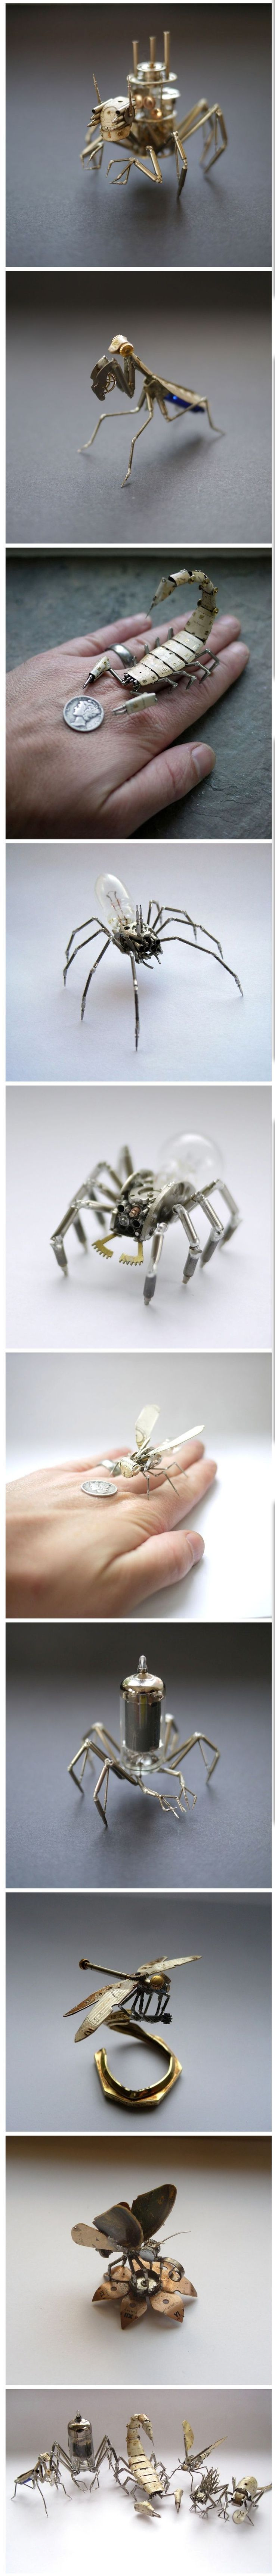 Tiny Mechanical Insects Made of Watch Parts - Monde Du Loisir…